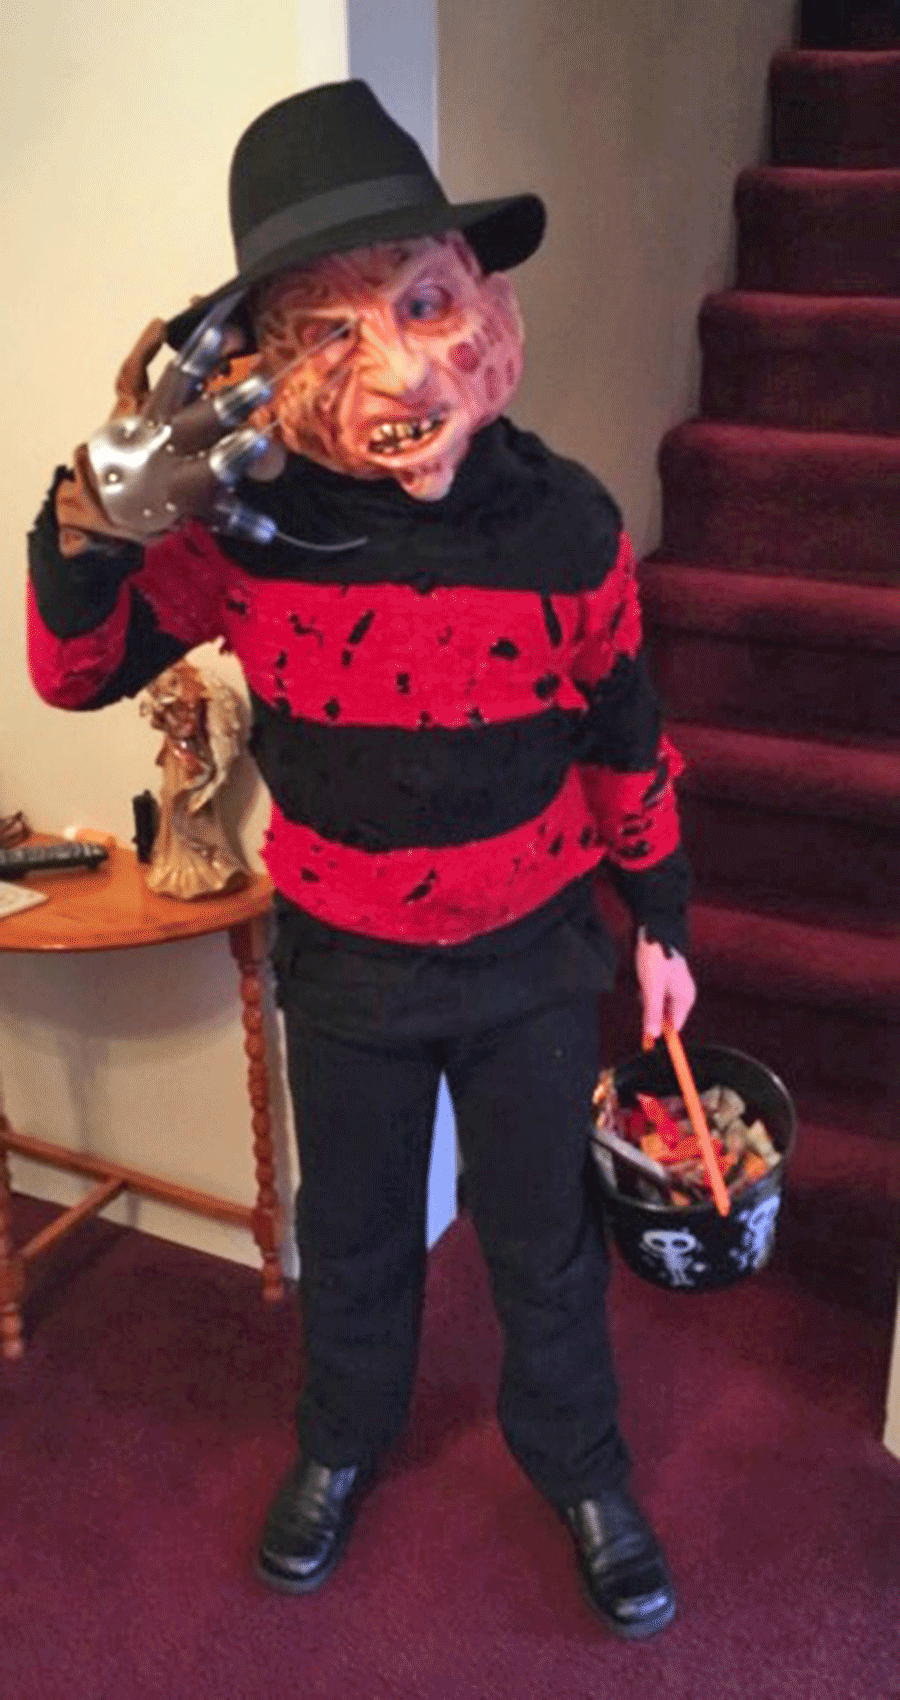 Seth Hammond, 9, Ogdensburg, dressed as Freddy Krueger during his night out searching for goodies on Halloween. Photo submitted by Bella Hammond.